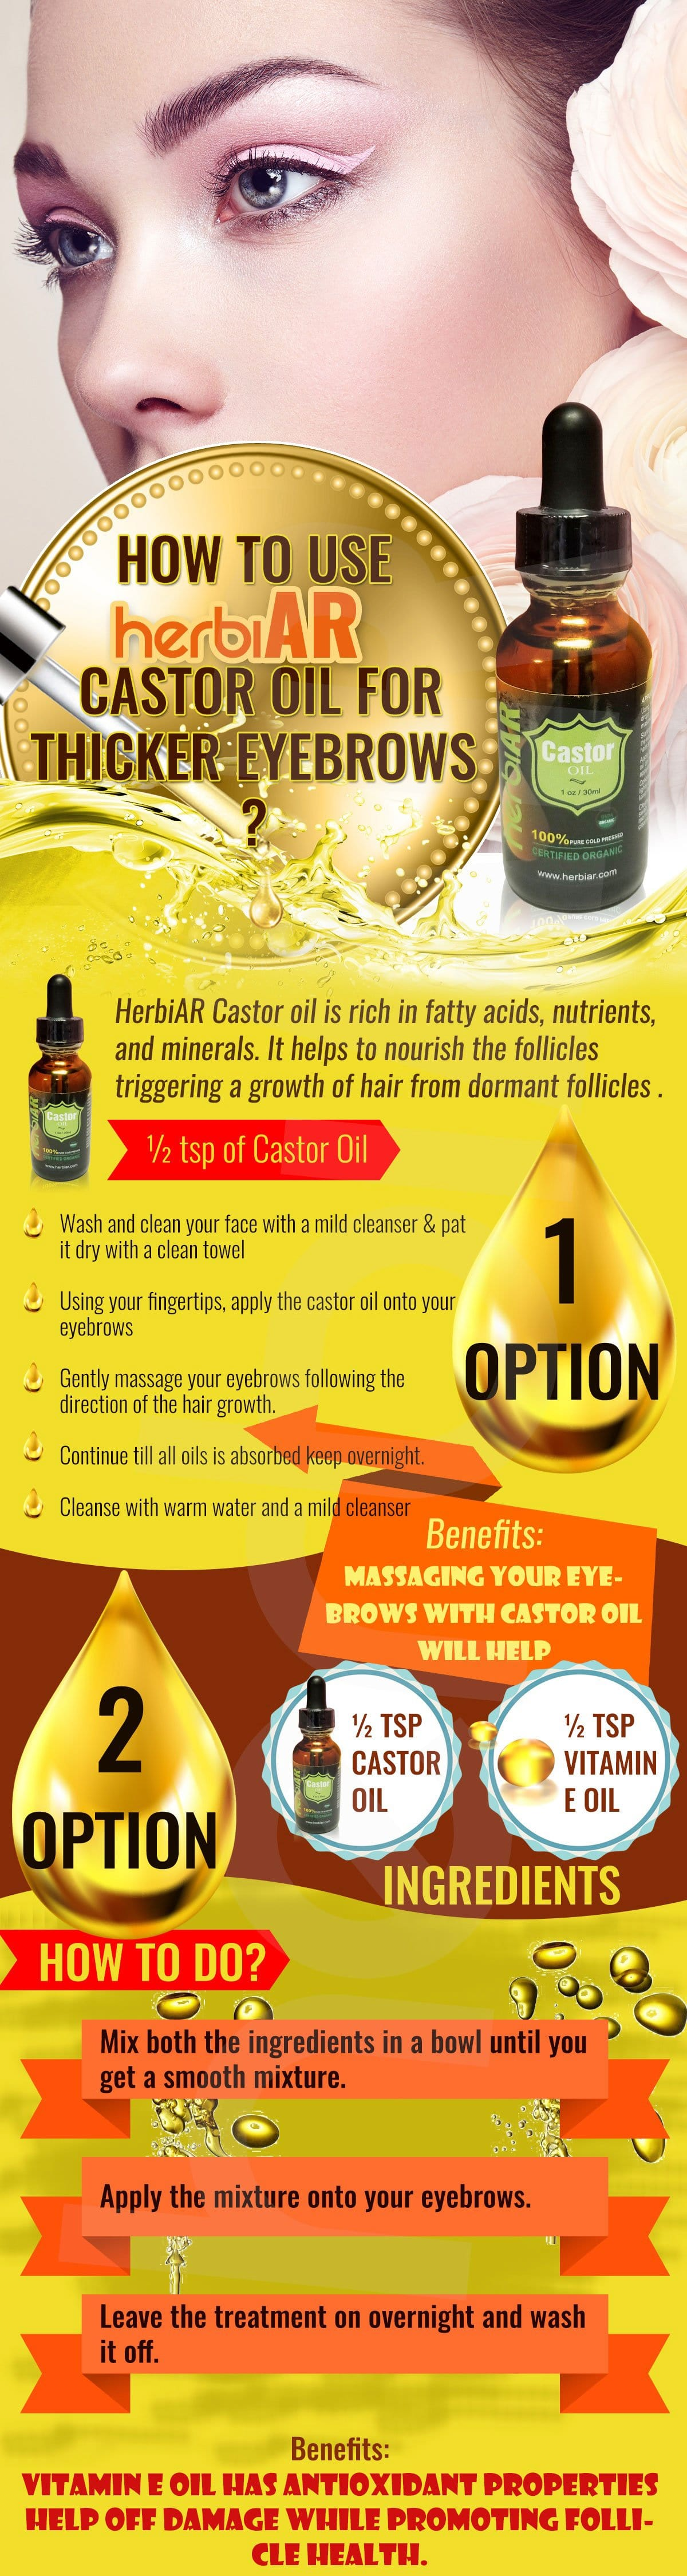 Use Castor Oil for Thicker Eyebrows